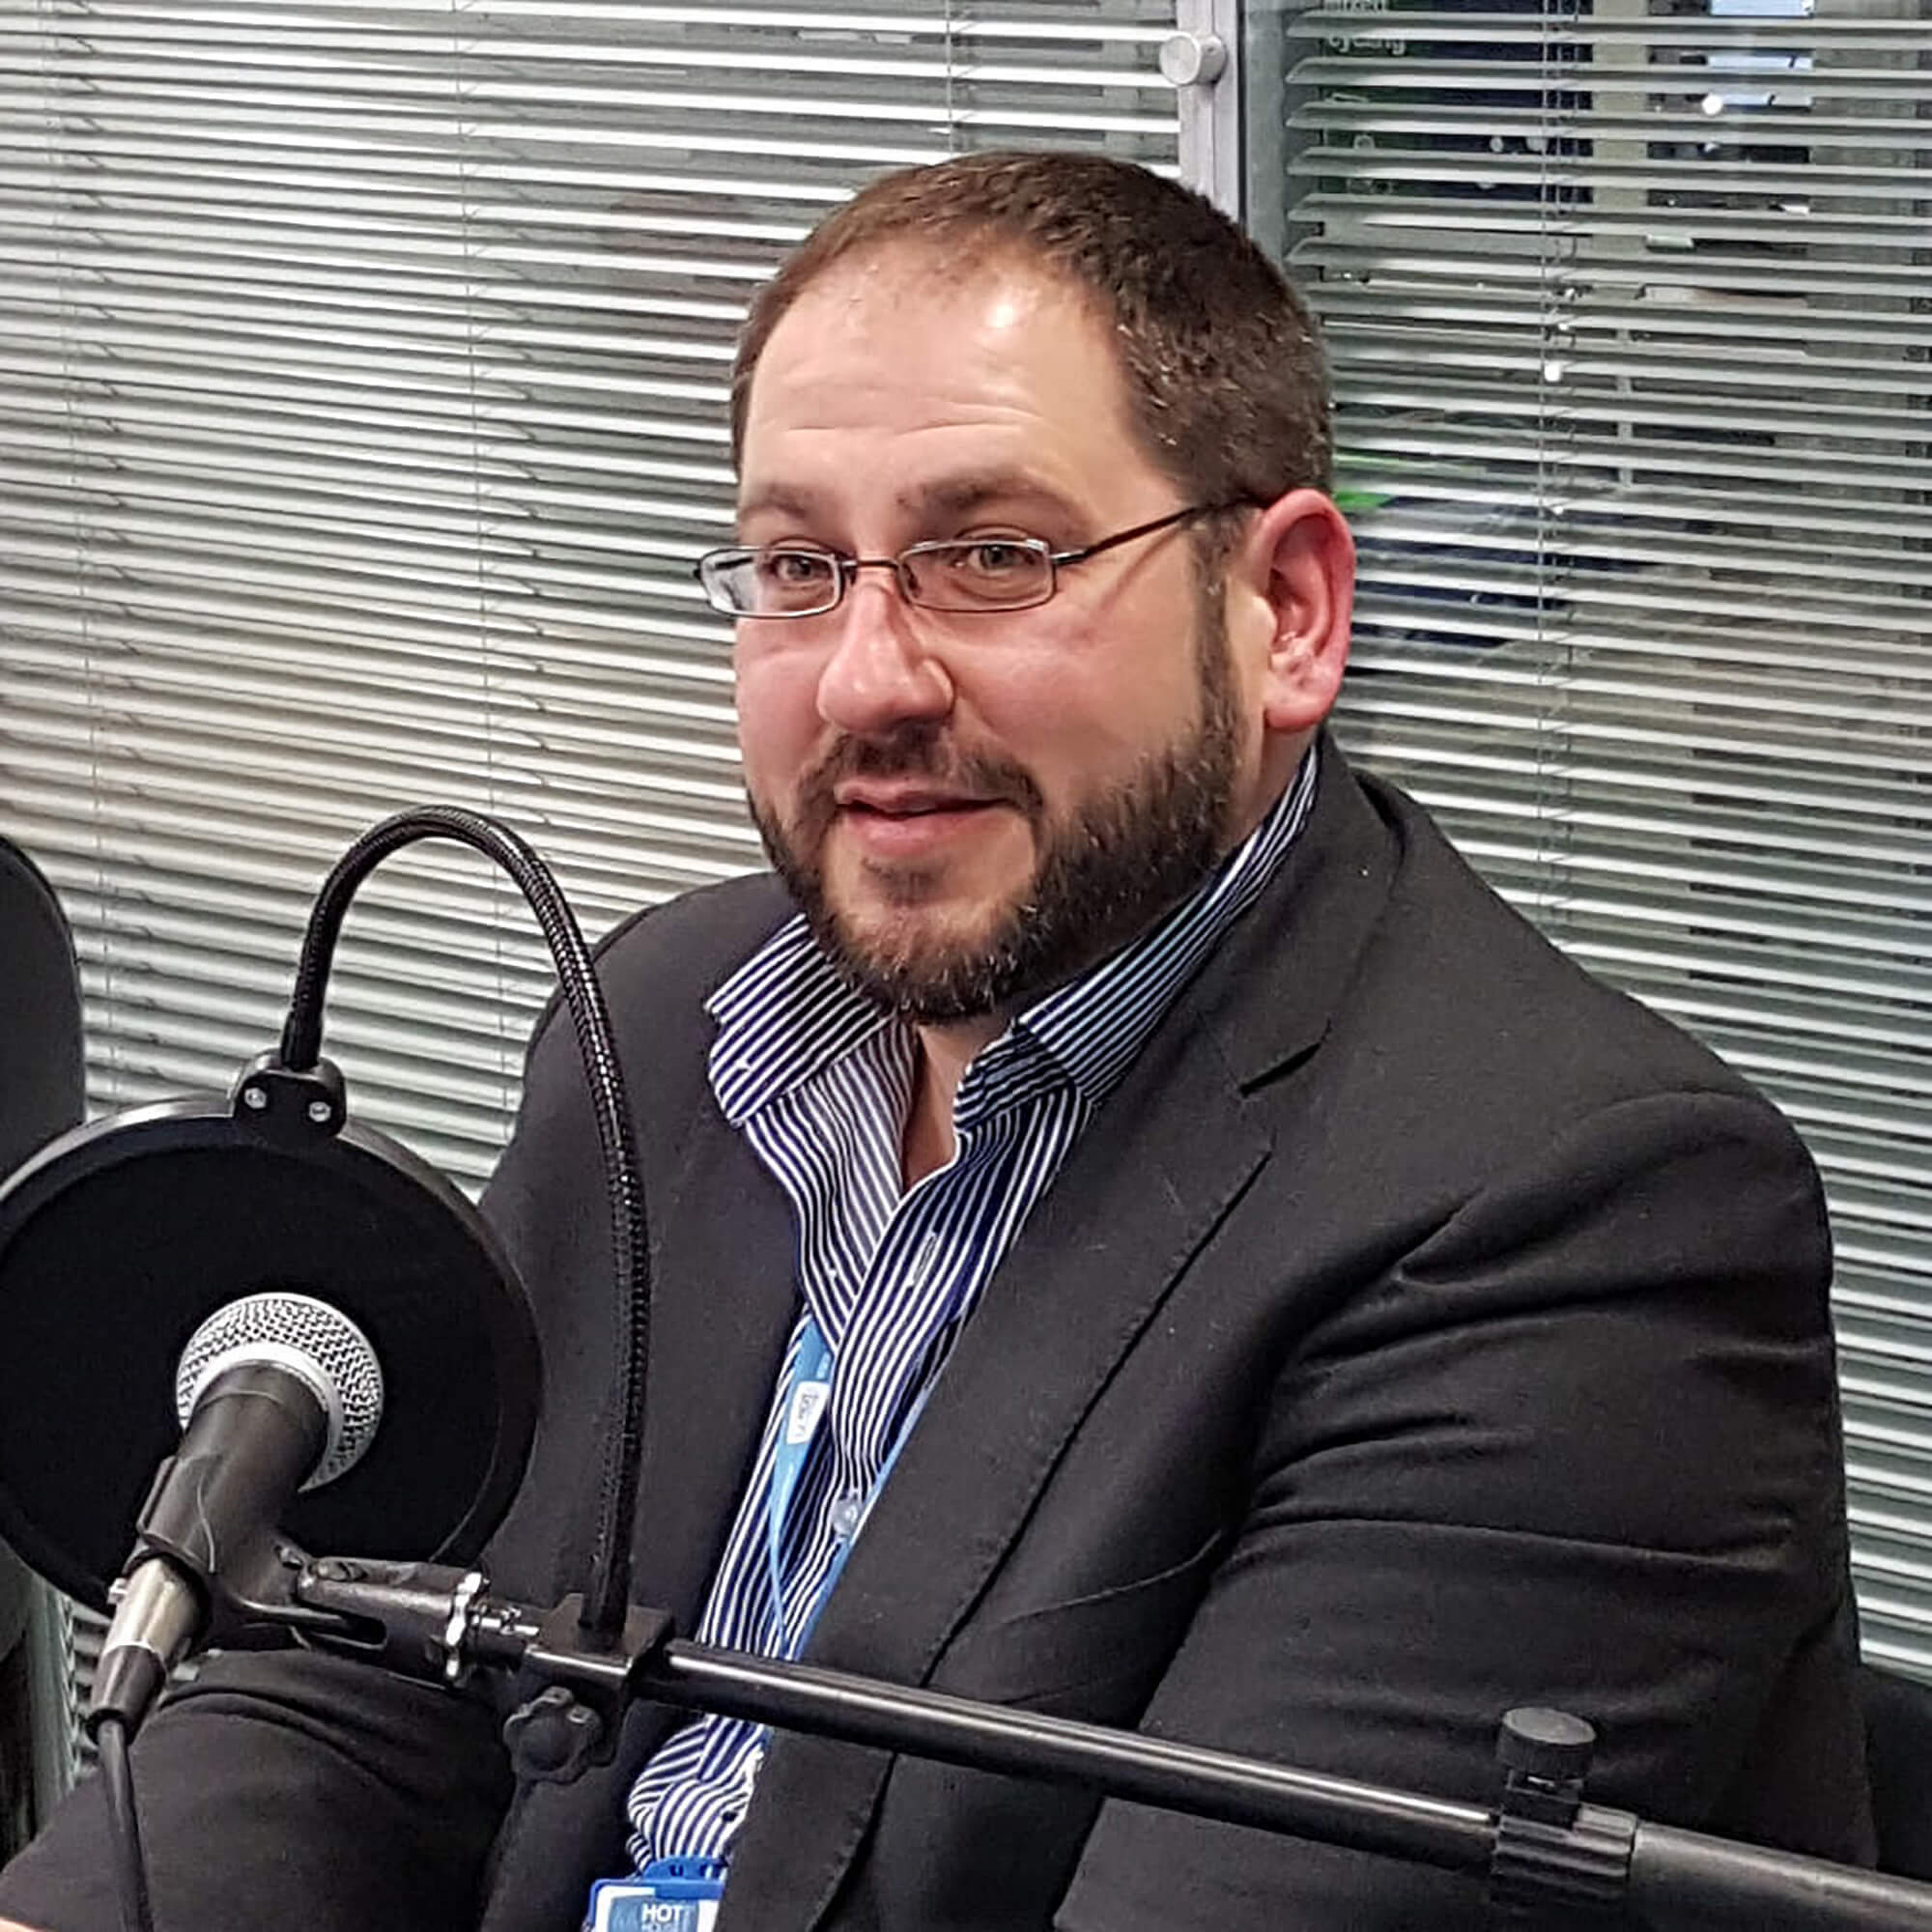 Jon wearing glasses, a blue shirt and gray jacket speaking in front of a mic at a podcast.